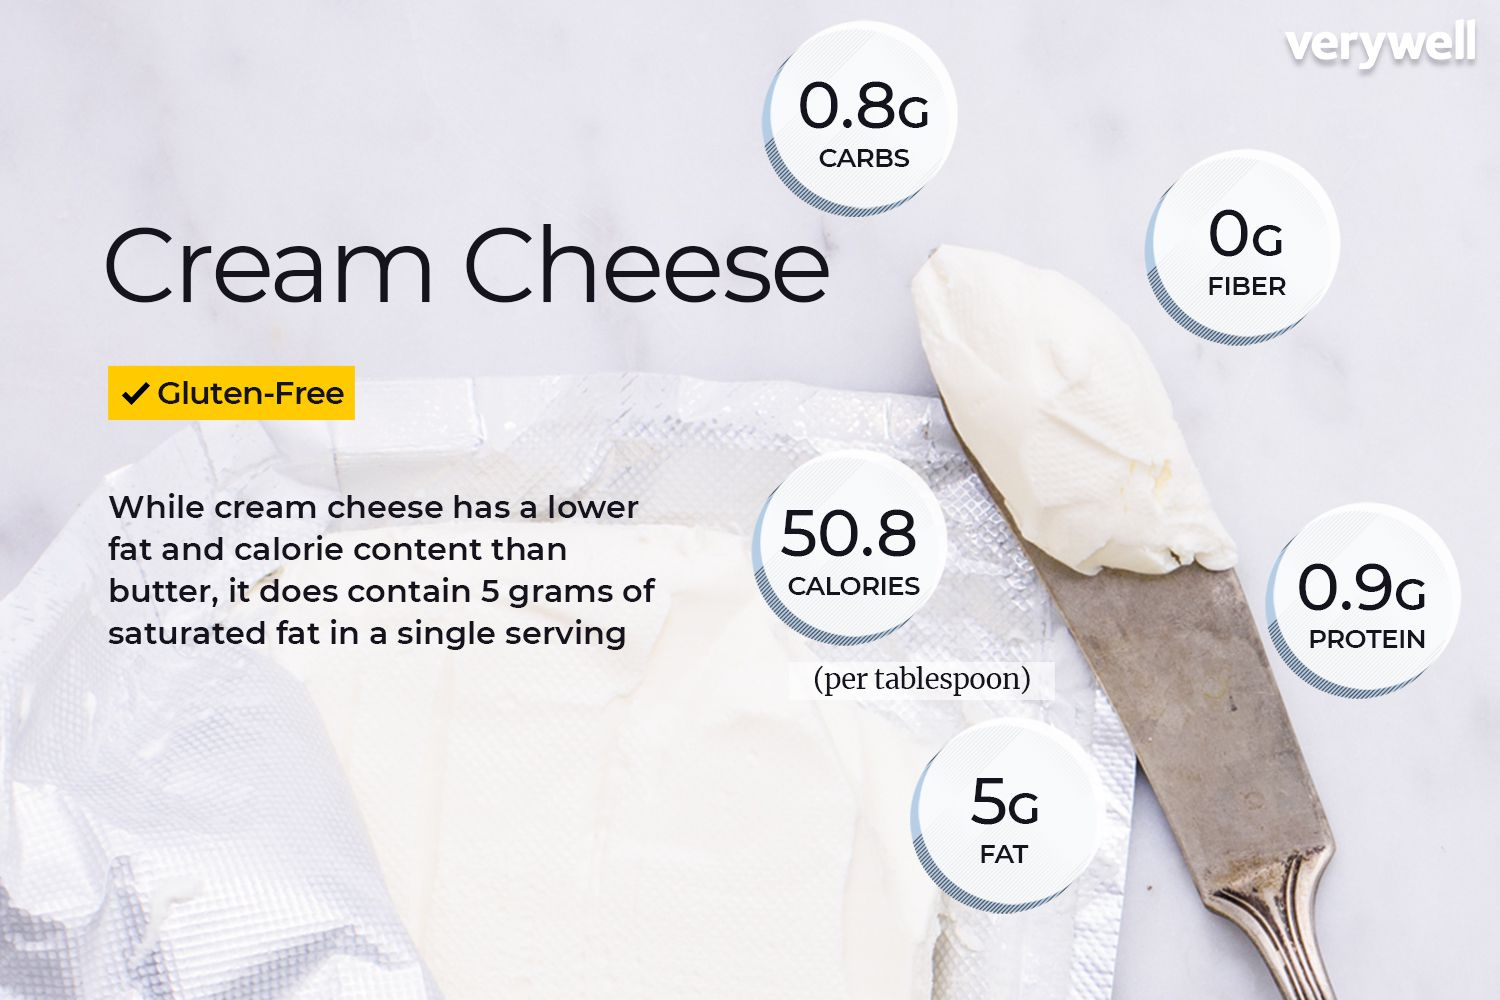 Cream Cheese Nutrition: Calories, Carbs, and Health Benefits